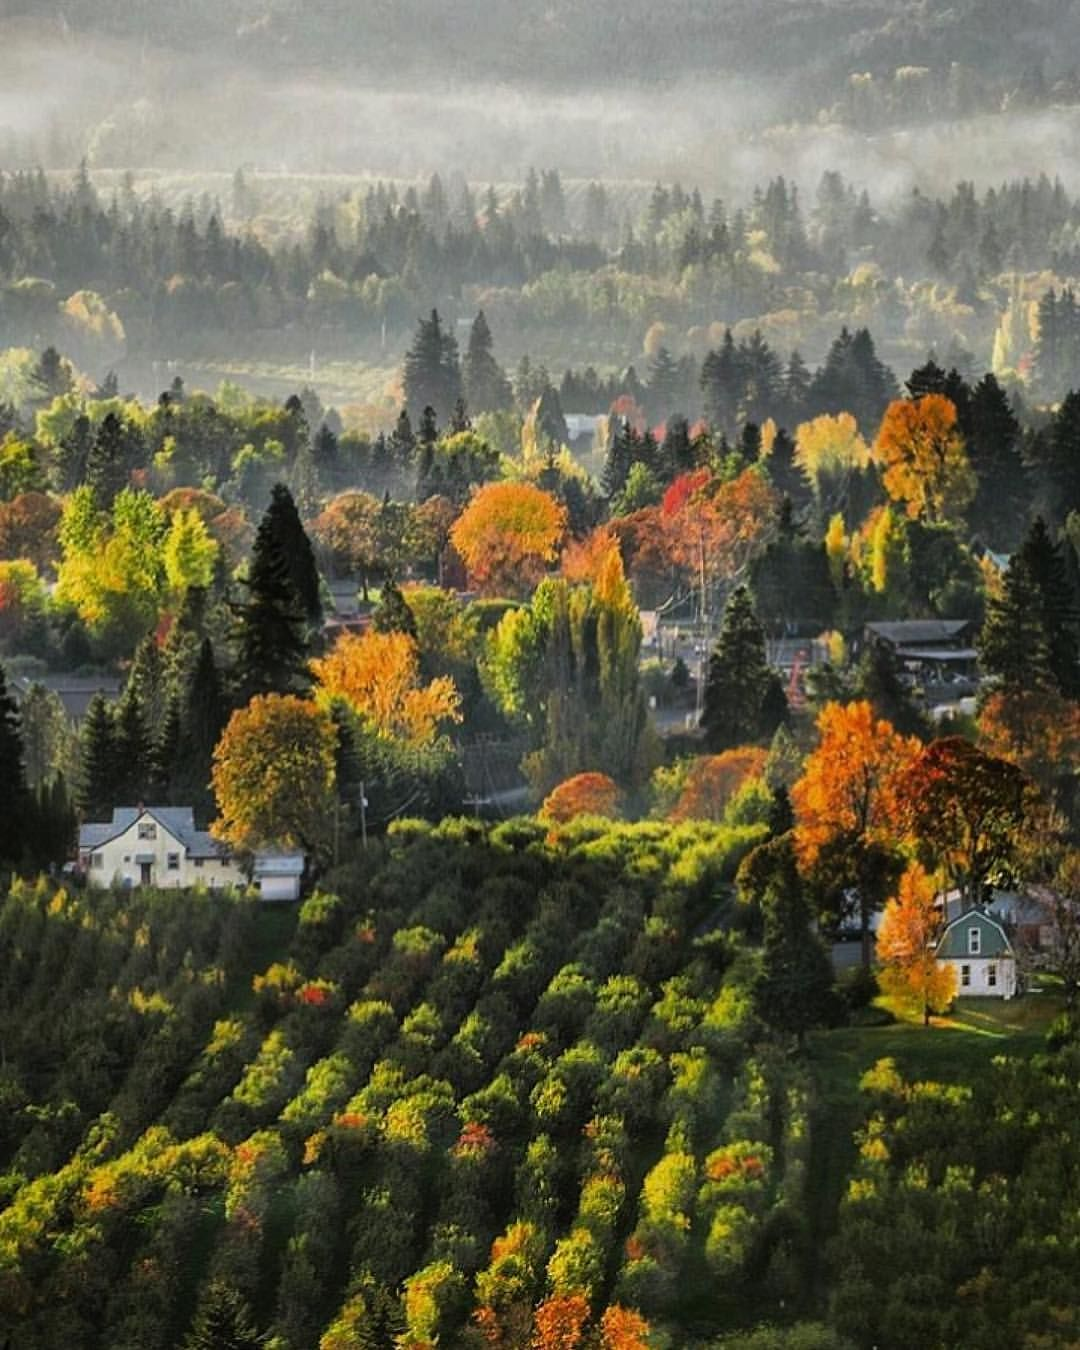 Hood River And Surrounding Areas So Important To Go Visit And